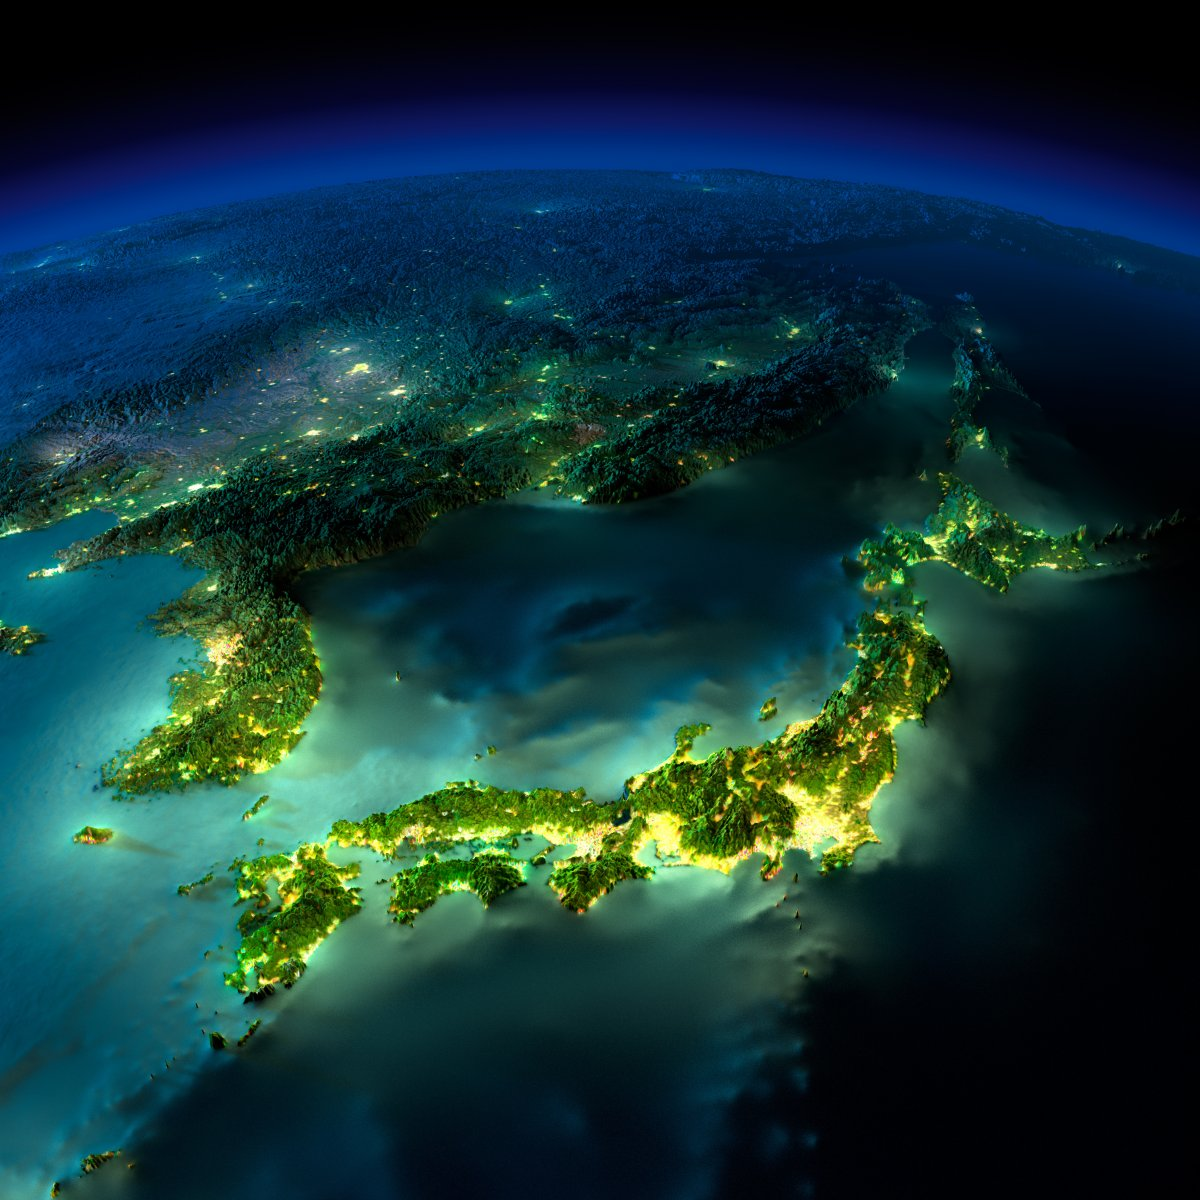 earth night photos japan by anton balazh